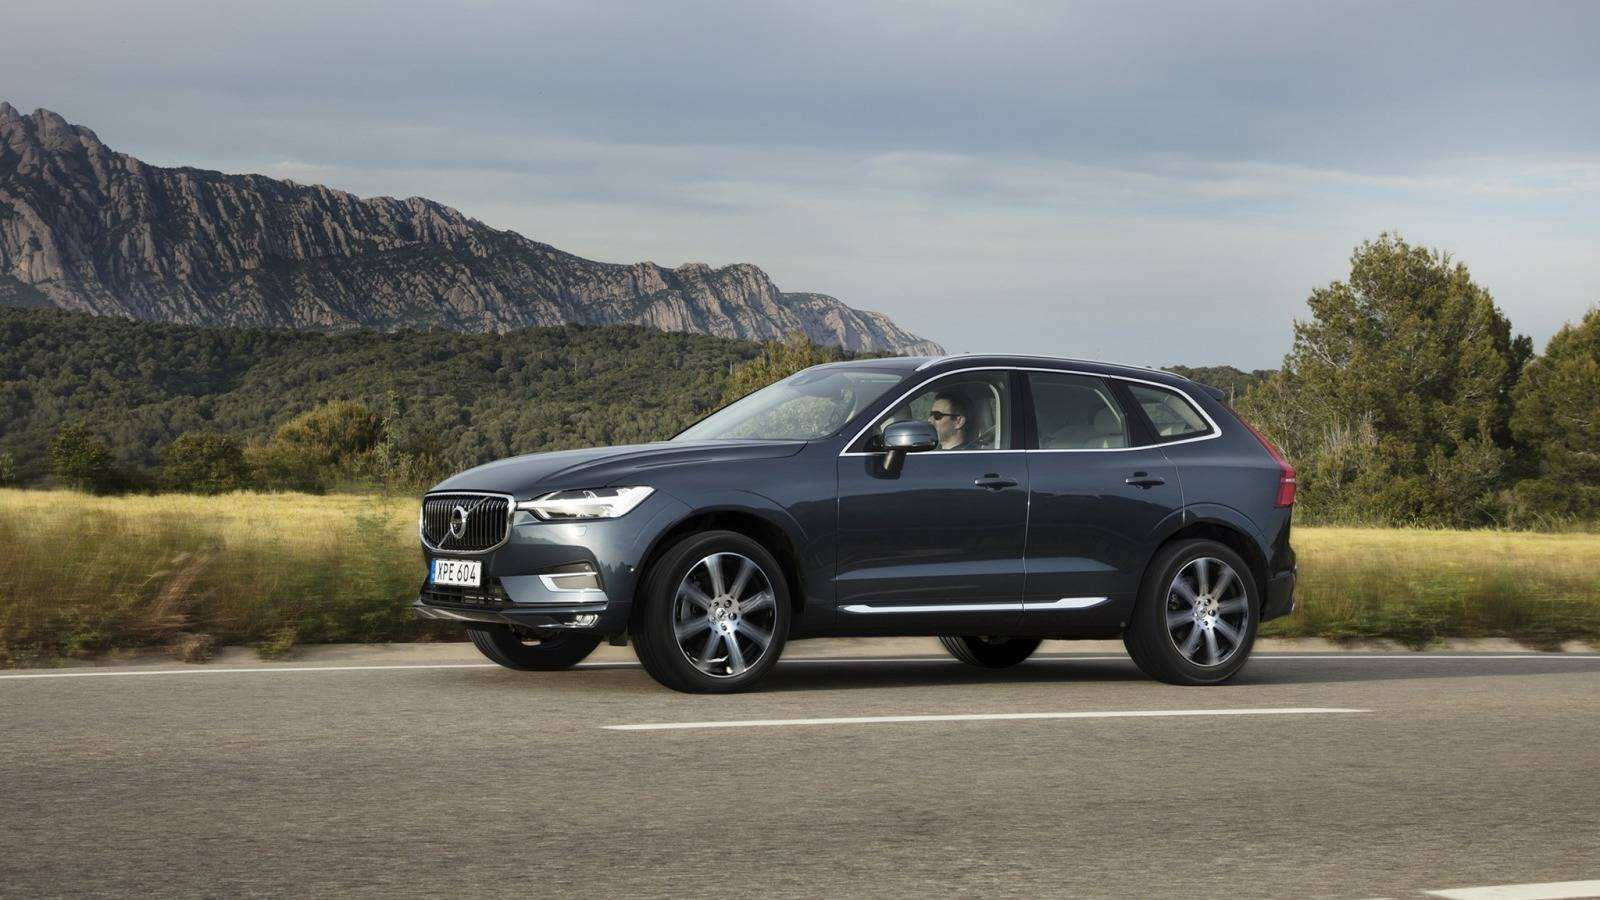 18 All New 2019 Volvo Xc60 Picture by 2019 Volvo Xc60